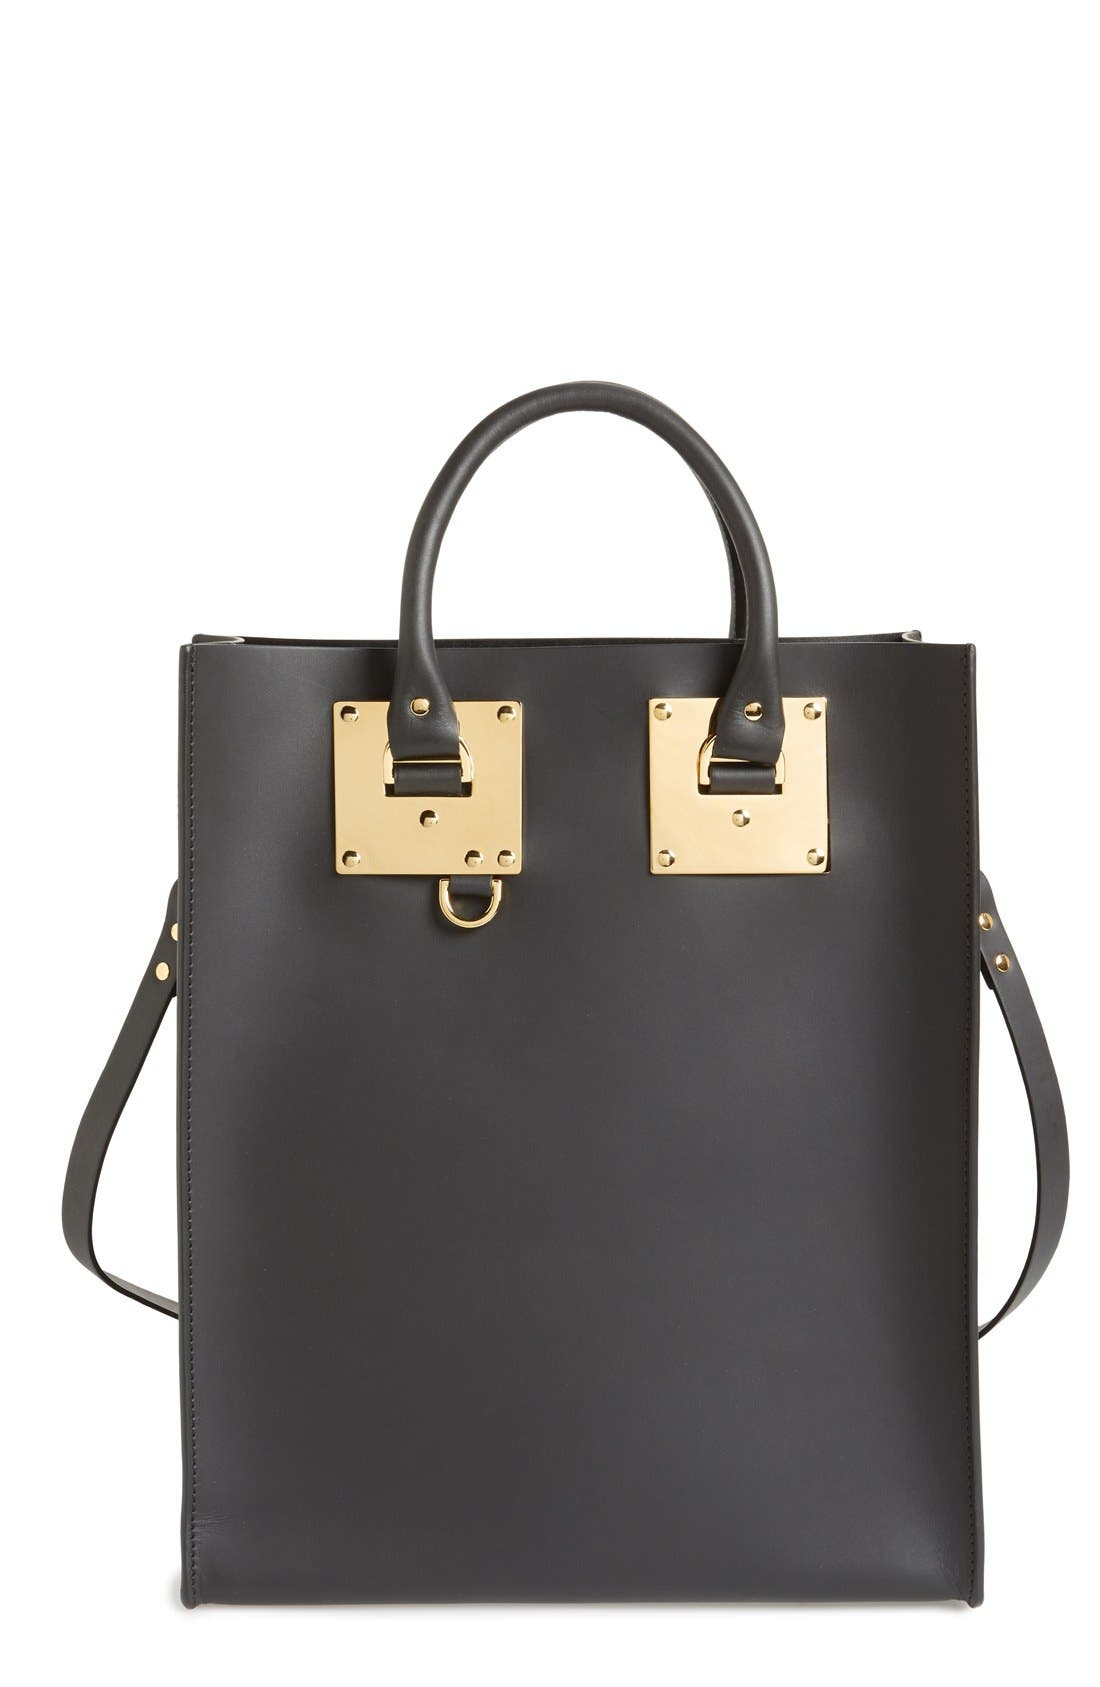 SOPHIE HULME 'Albion' Tote, Main, color, 001